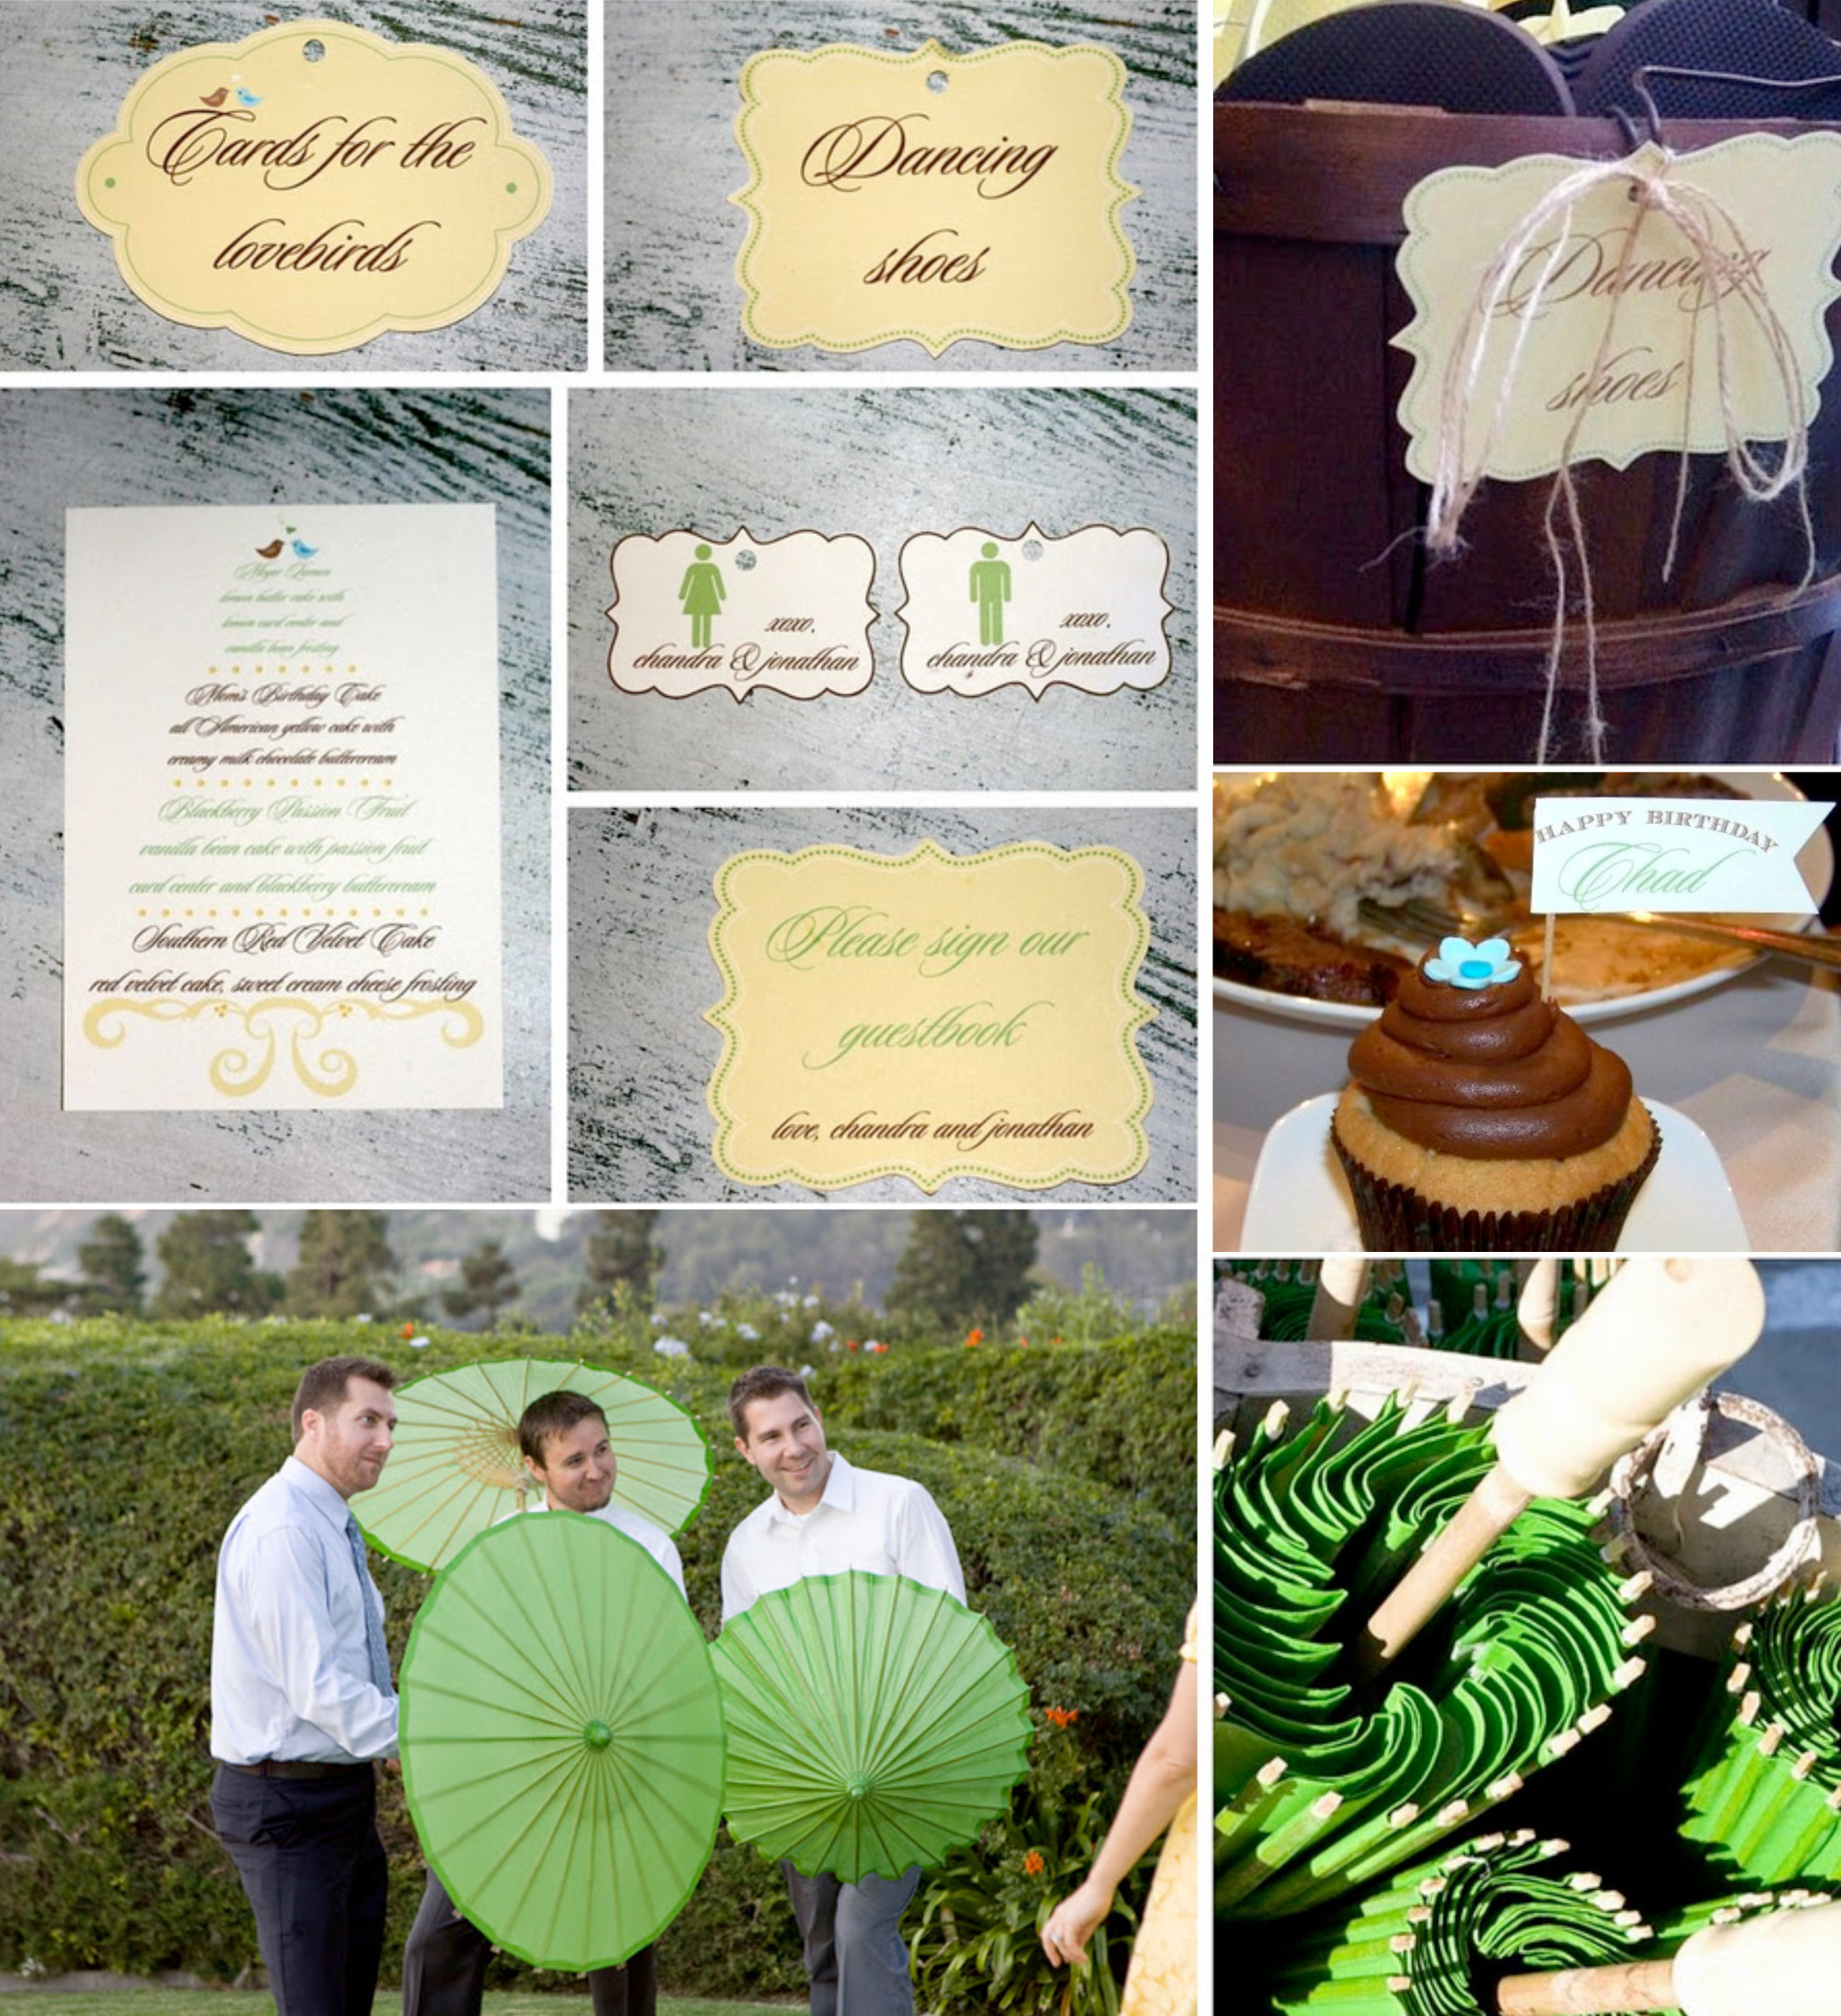 Best ideas about DIY Weddings On A Budget . Save or Pin diy wedding ideas bud Now.